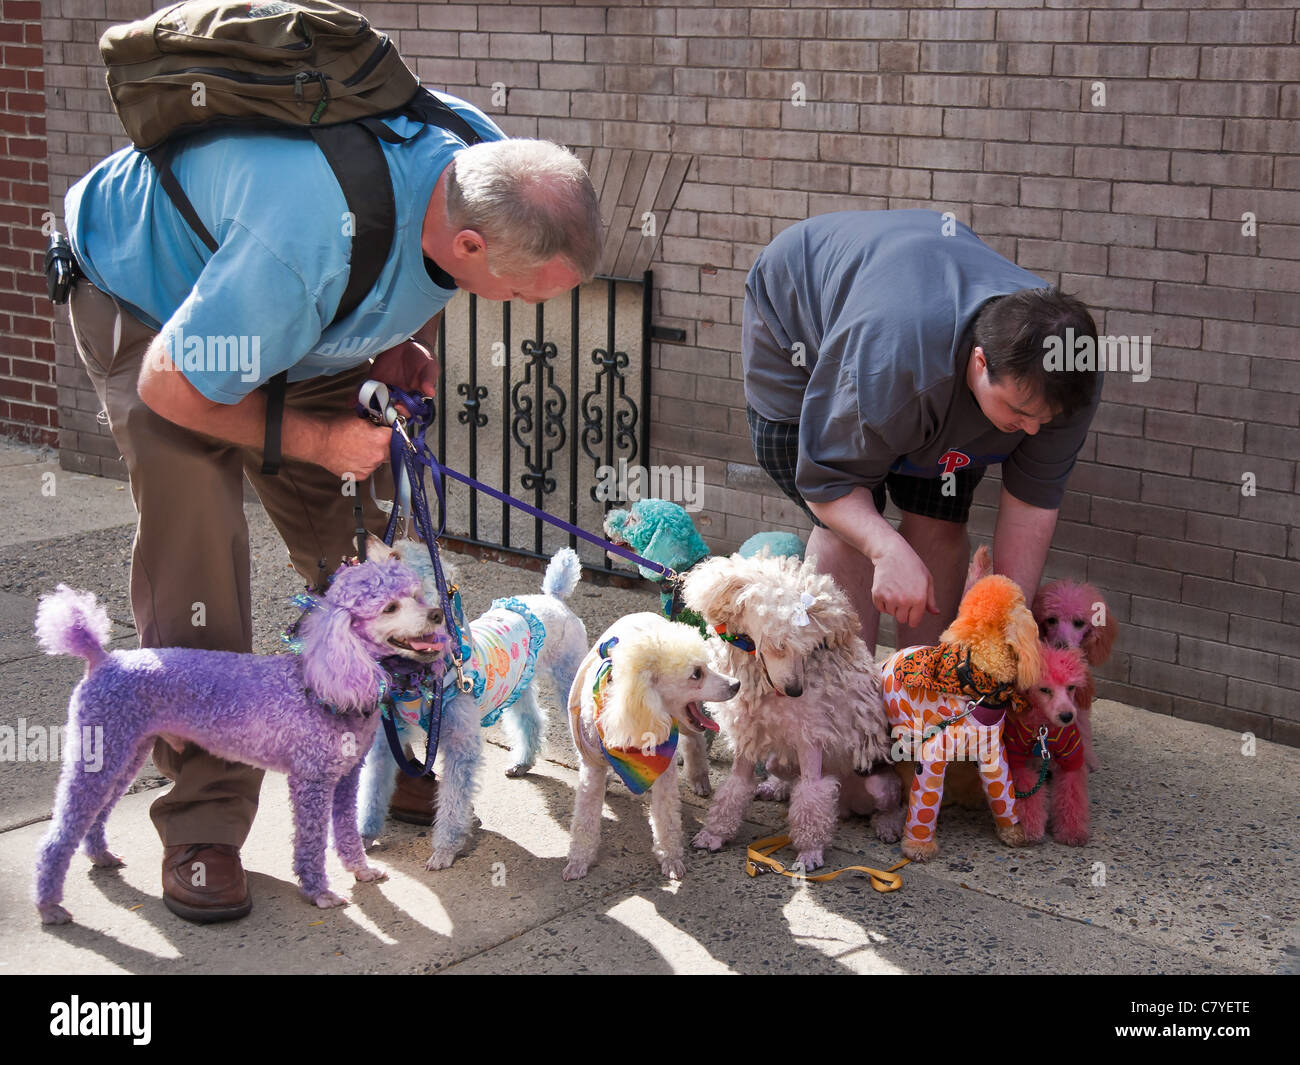 Two men and their poodles that have been dyed rainbow colors for the Gay Outfest event in Philadelphia, Pennsylvania - Stock Image